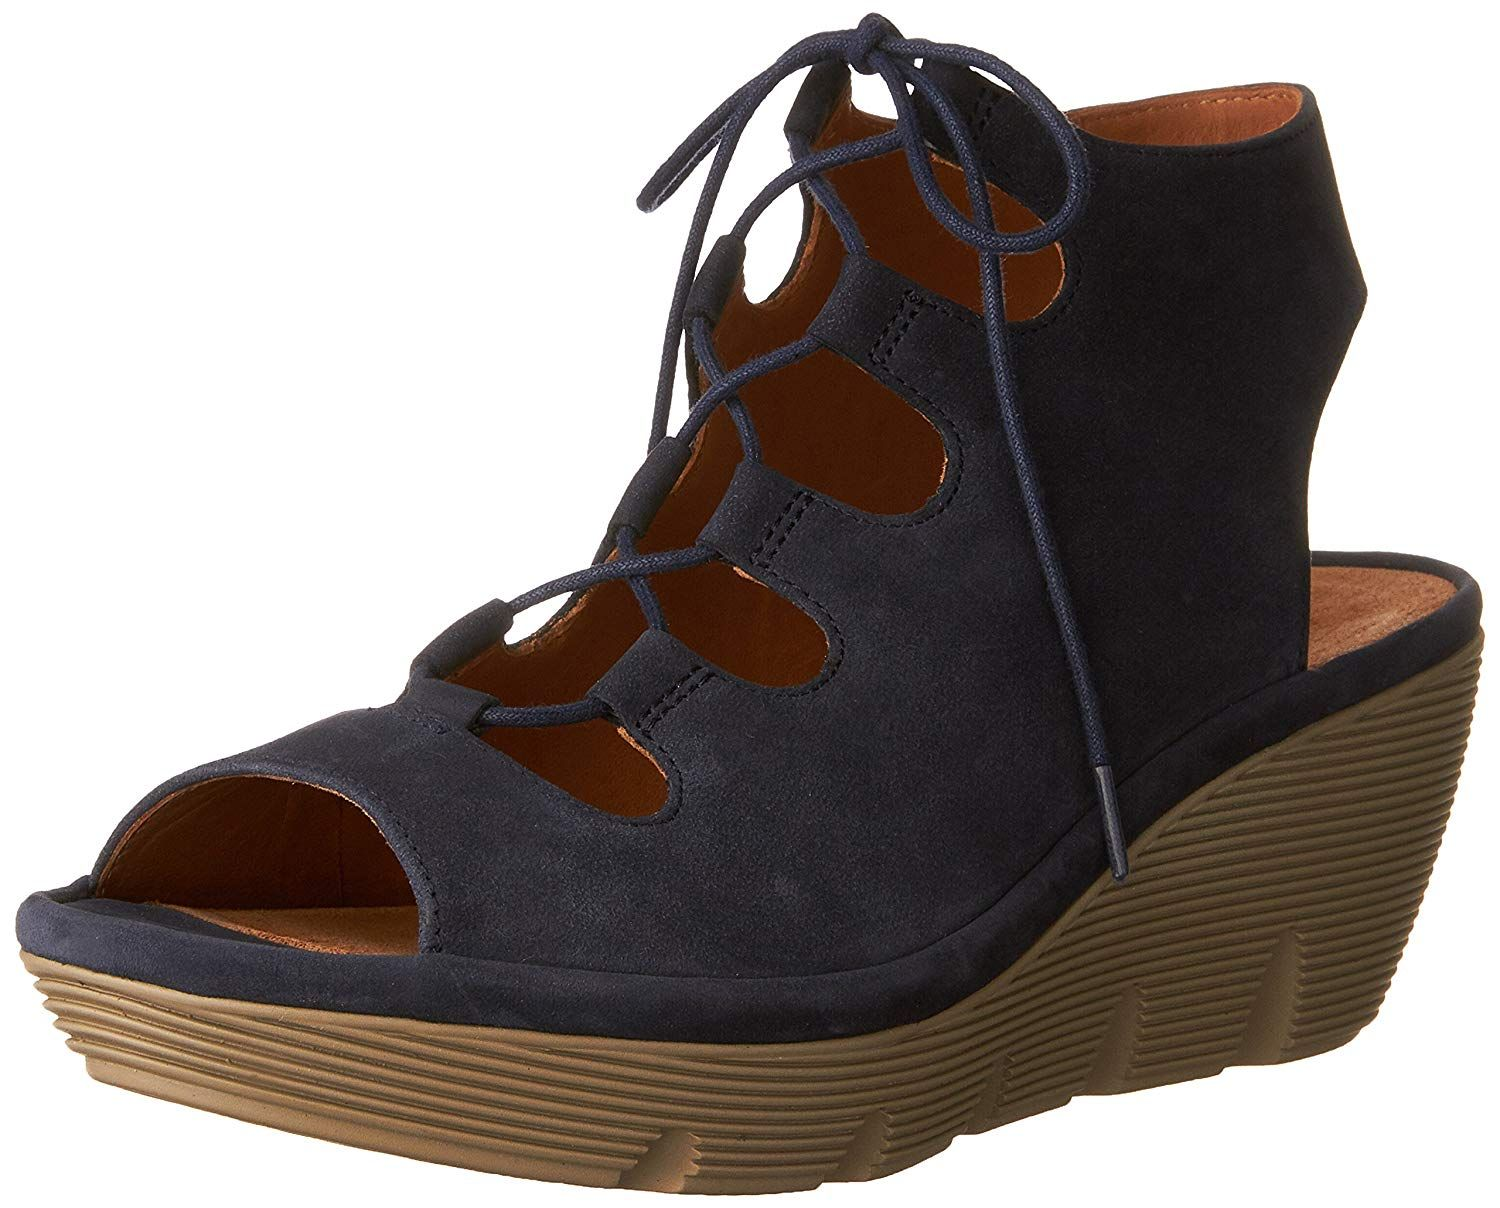 4d75aafe17a Clarks Womens Clarene Grace Suede Open Toe Casual Platform Sandals --  Thanks for seeing our picture. (This is an affiliate link)   ...